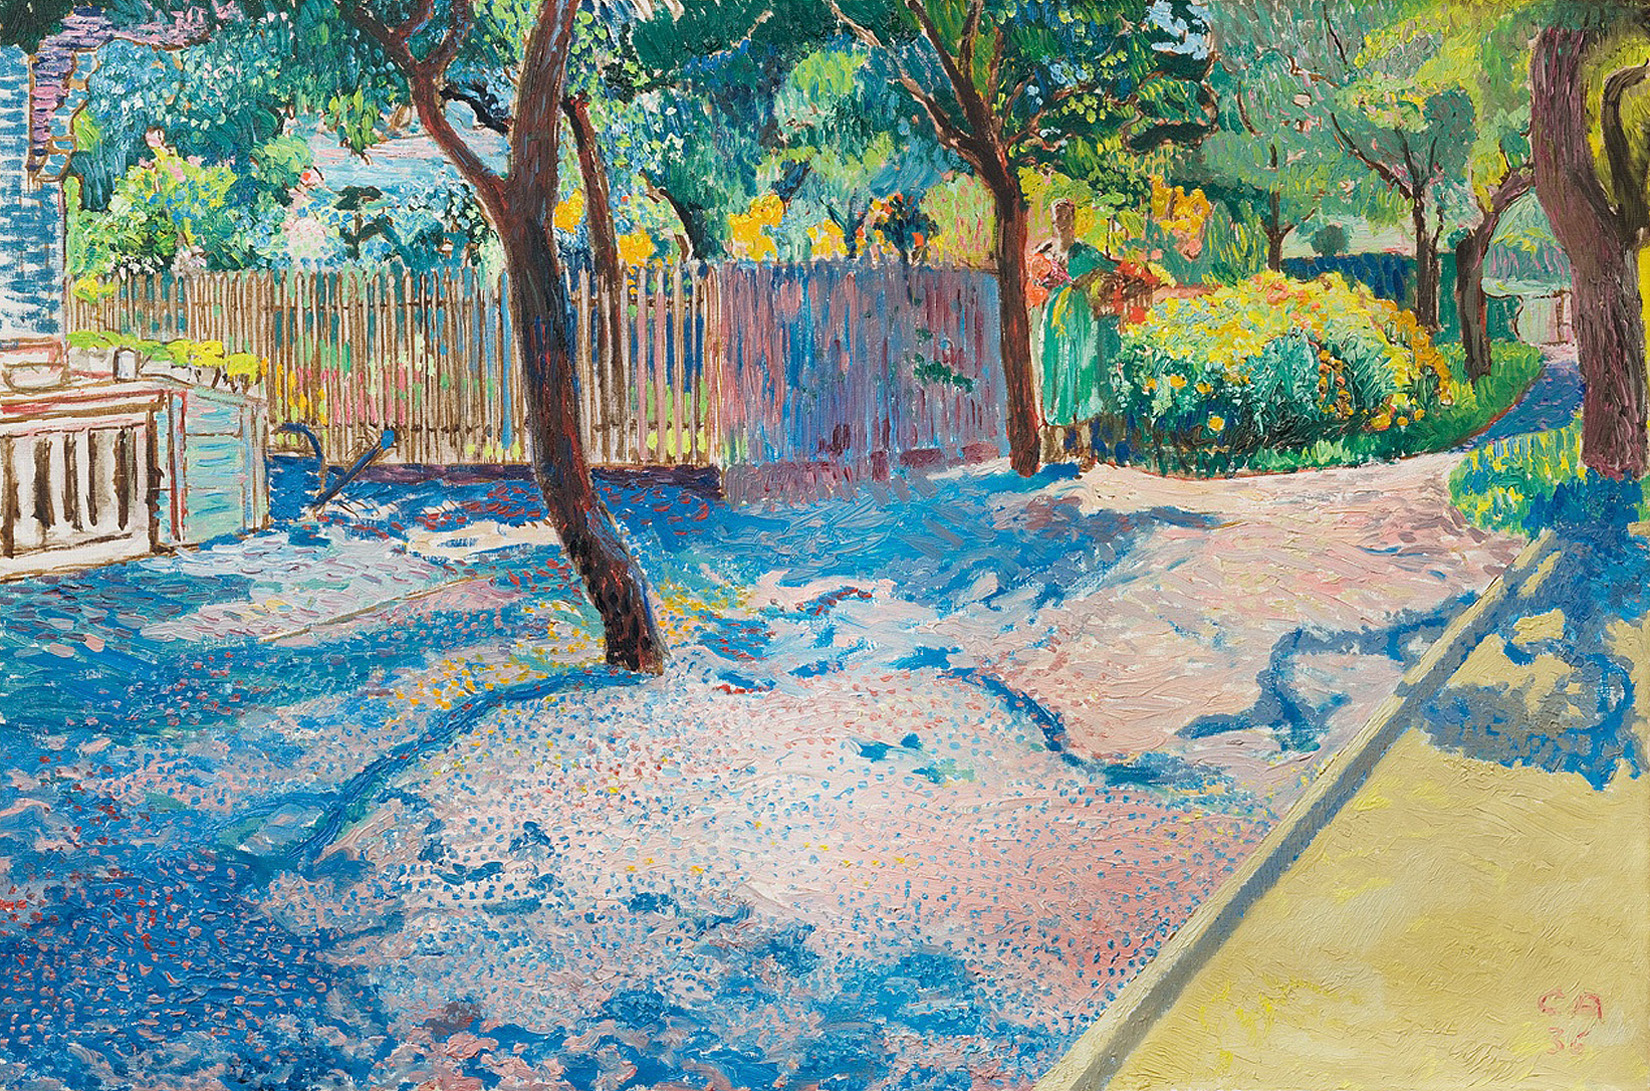 Cuno Amiet, Garden with Bowling Alley, Oschwand, 1936